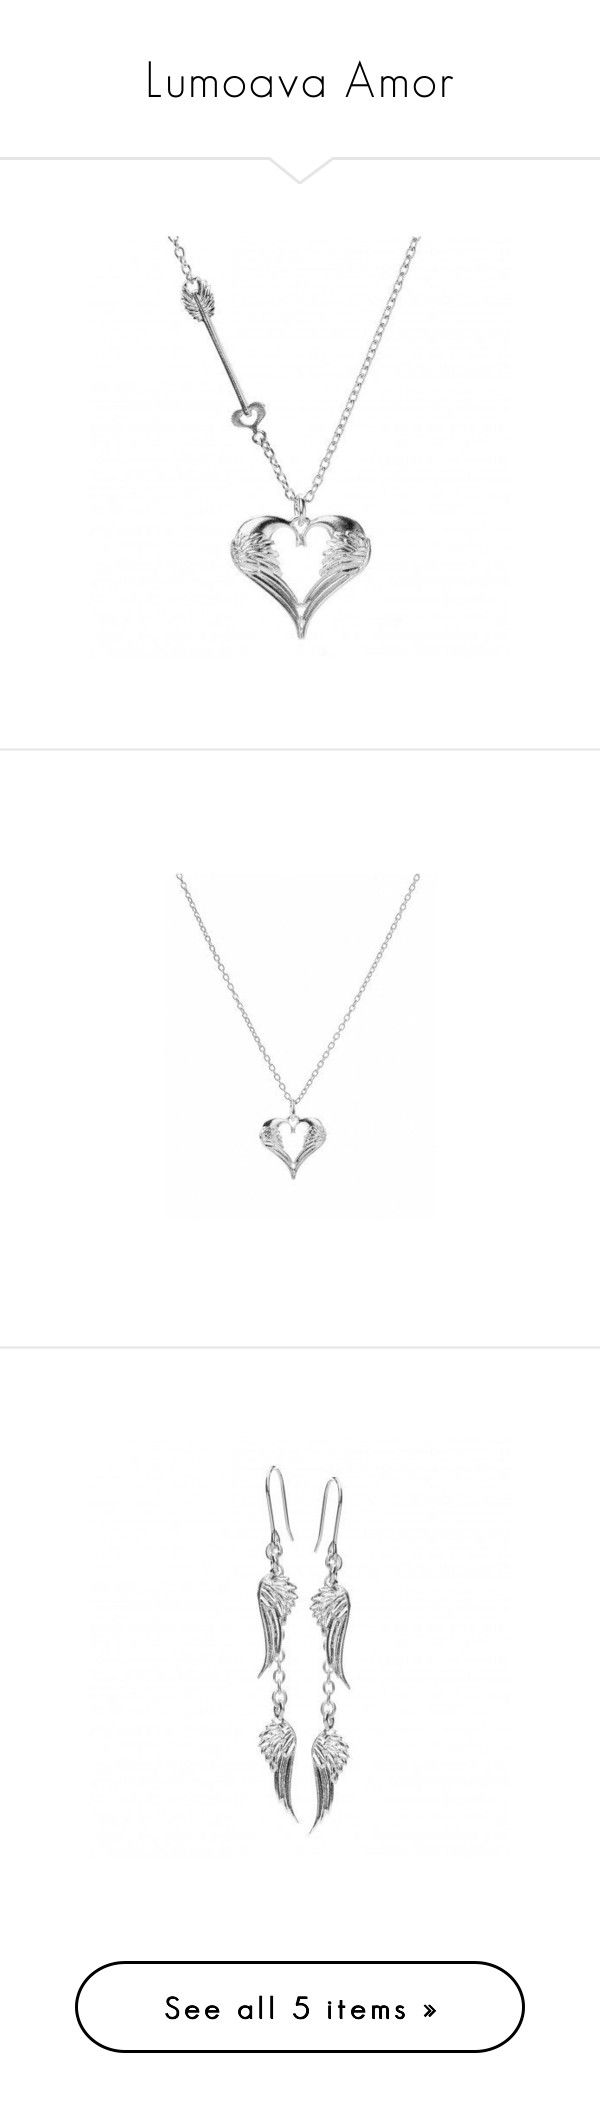 """""""Lumoava Amor"""" by blueicejewellery on Polyvore featuring jewelry, pendants, silver pendant, charm pendant, silver jewelry, pendant jewelry, silver pendant jewelry, silver jewellery, earrings and silver earrings"""